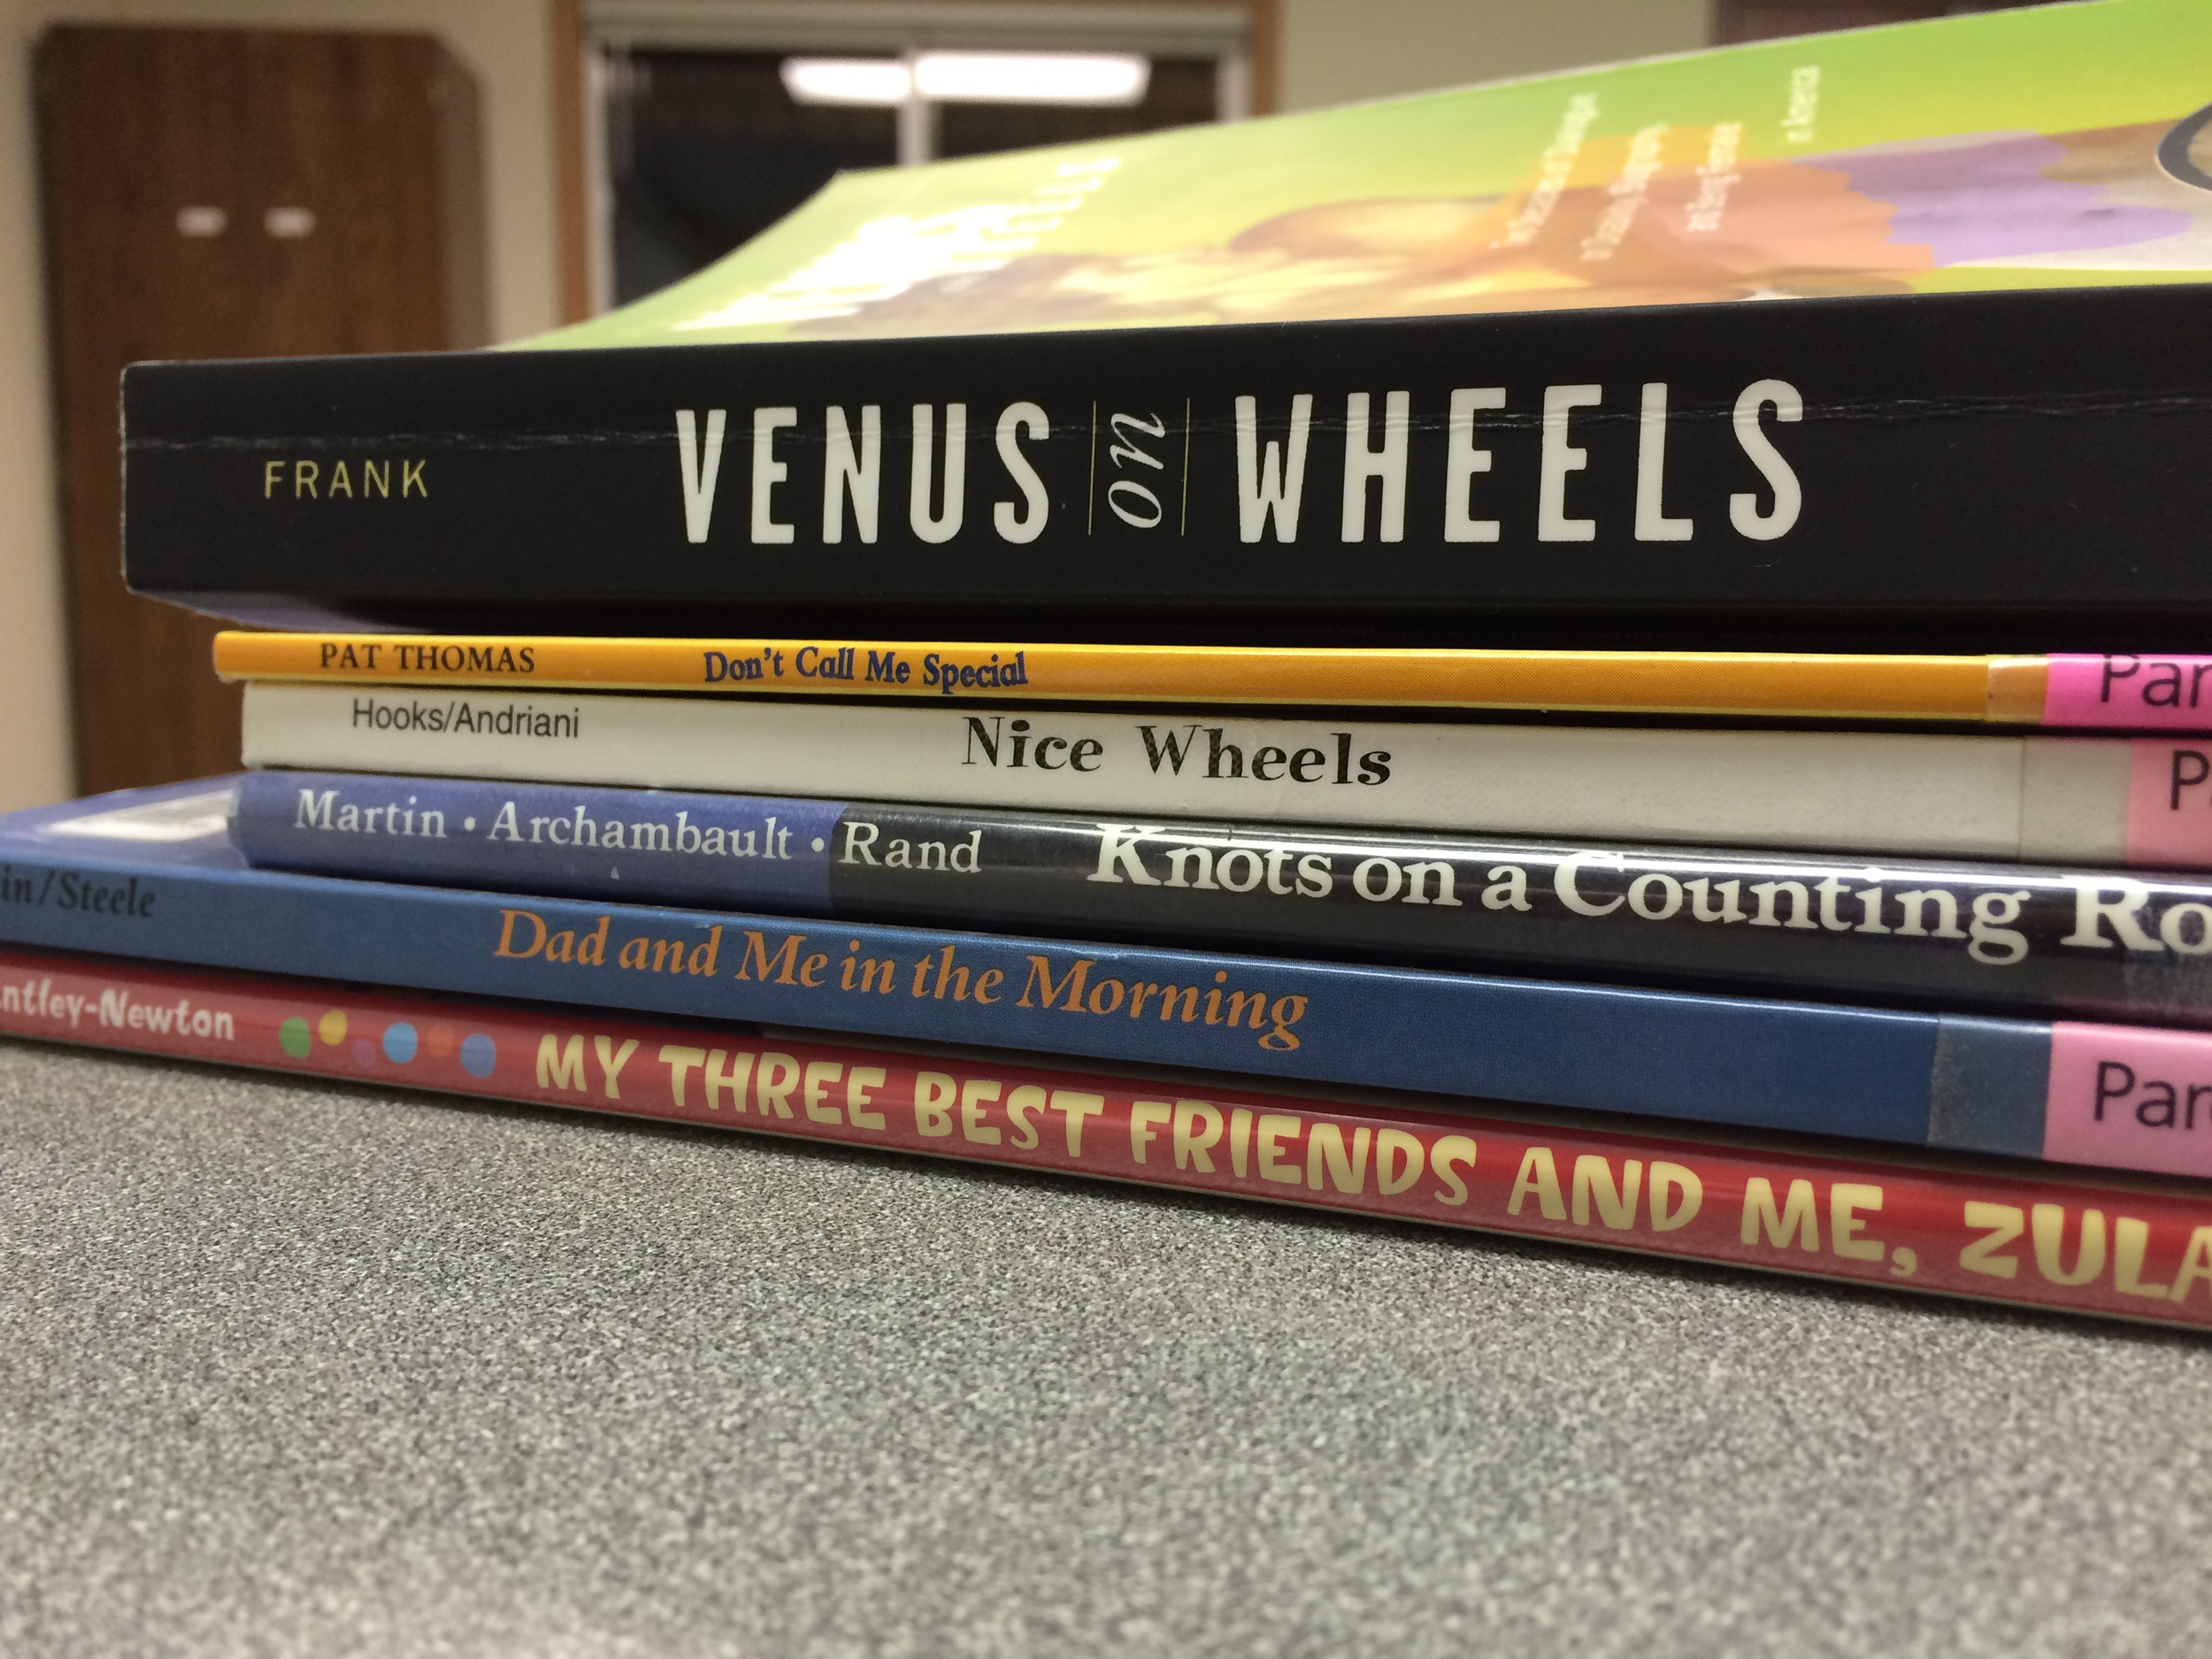 Reading children's books on disabilities in conjunction with Venus on Wheels . Medicine, Body, Culture. Spring 15.